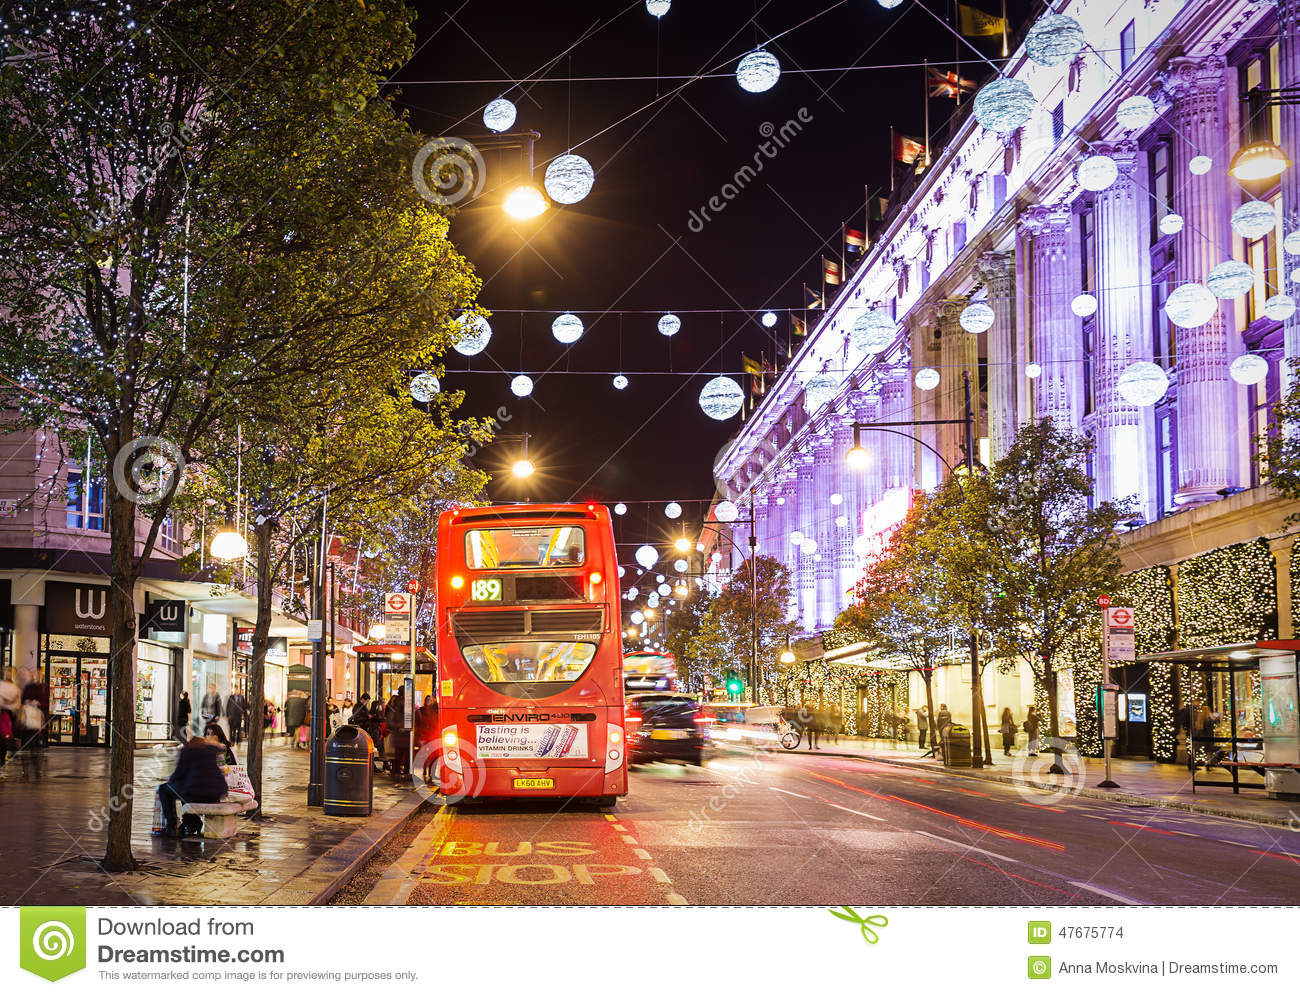 Decoration Noel Londres 13 November 2014 View On Oxford Street, London, Decorated